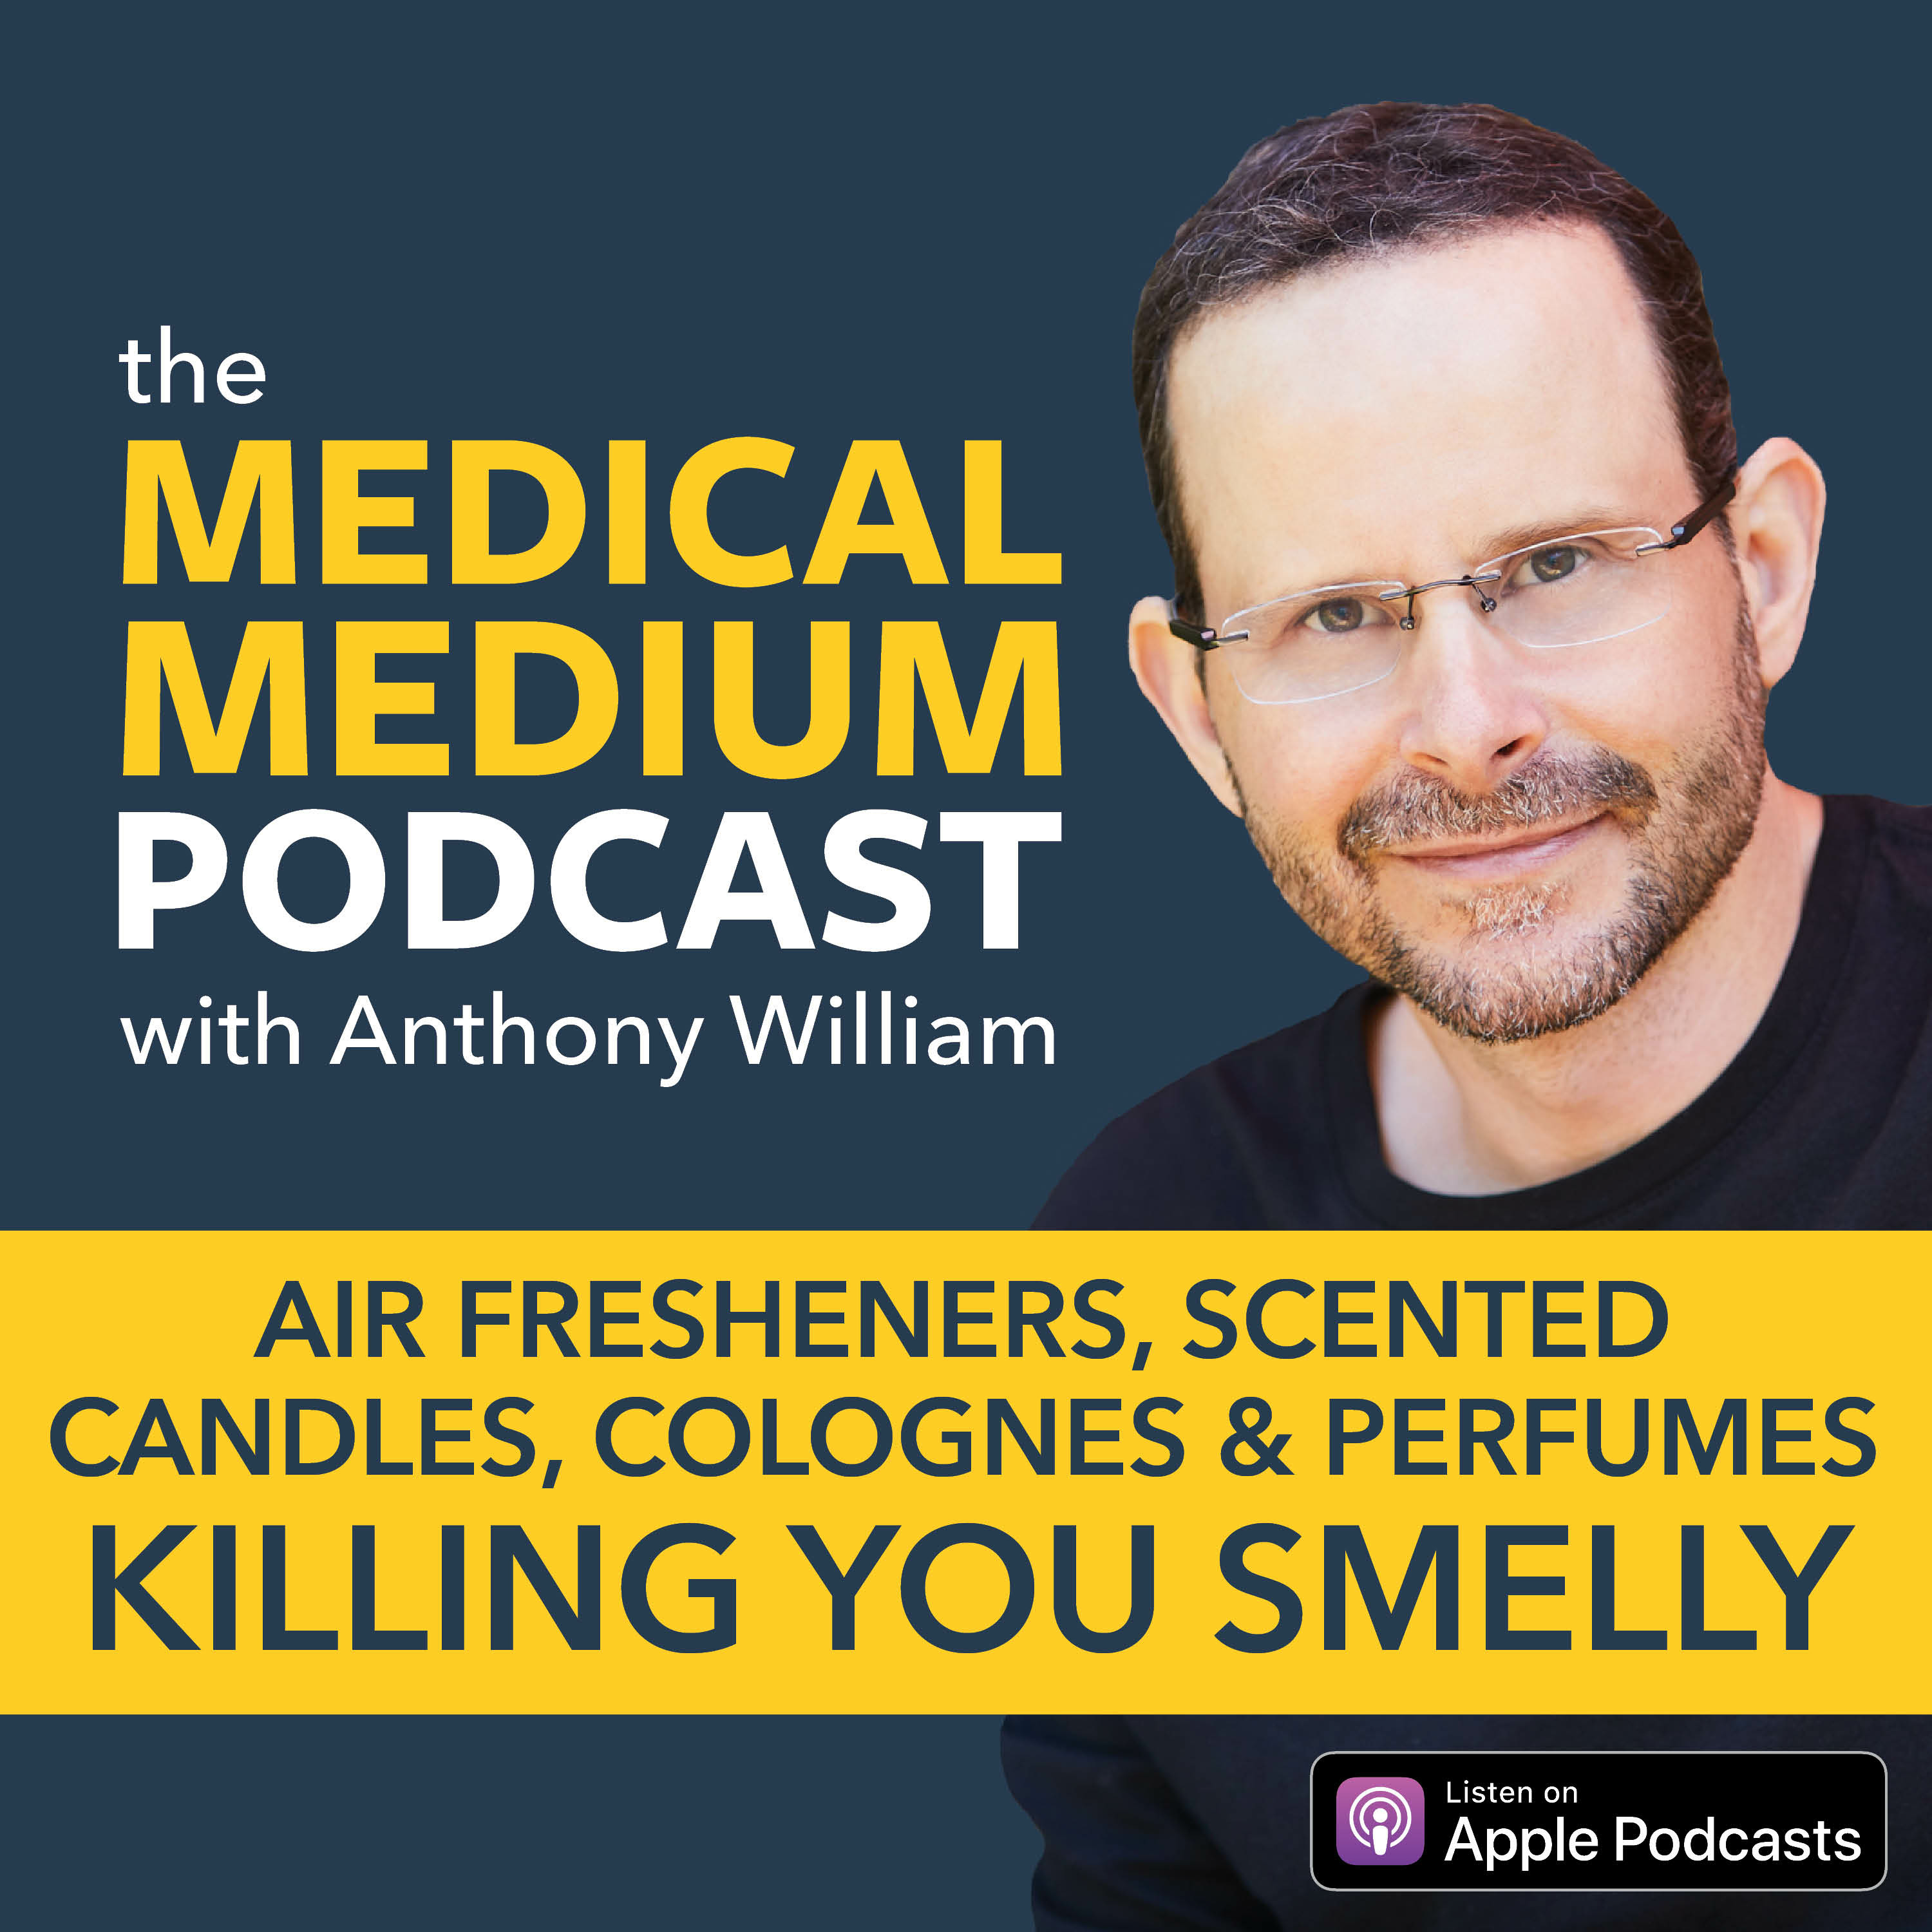 004 Air Fresheners, Scented Candles, Colognes & Perfumes: Killing You Smelly